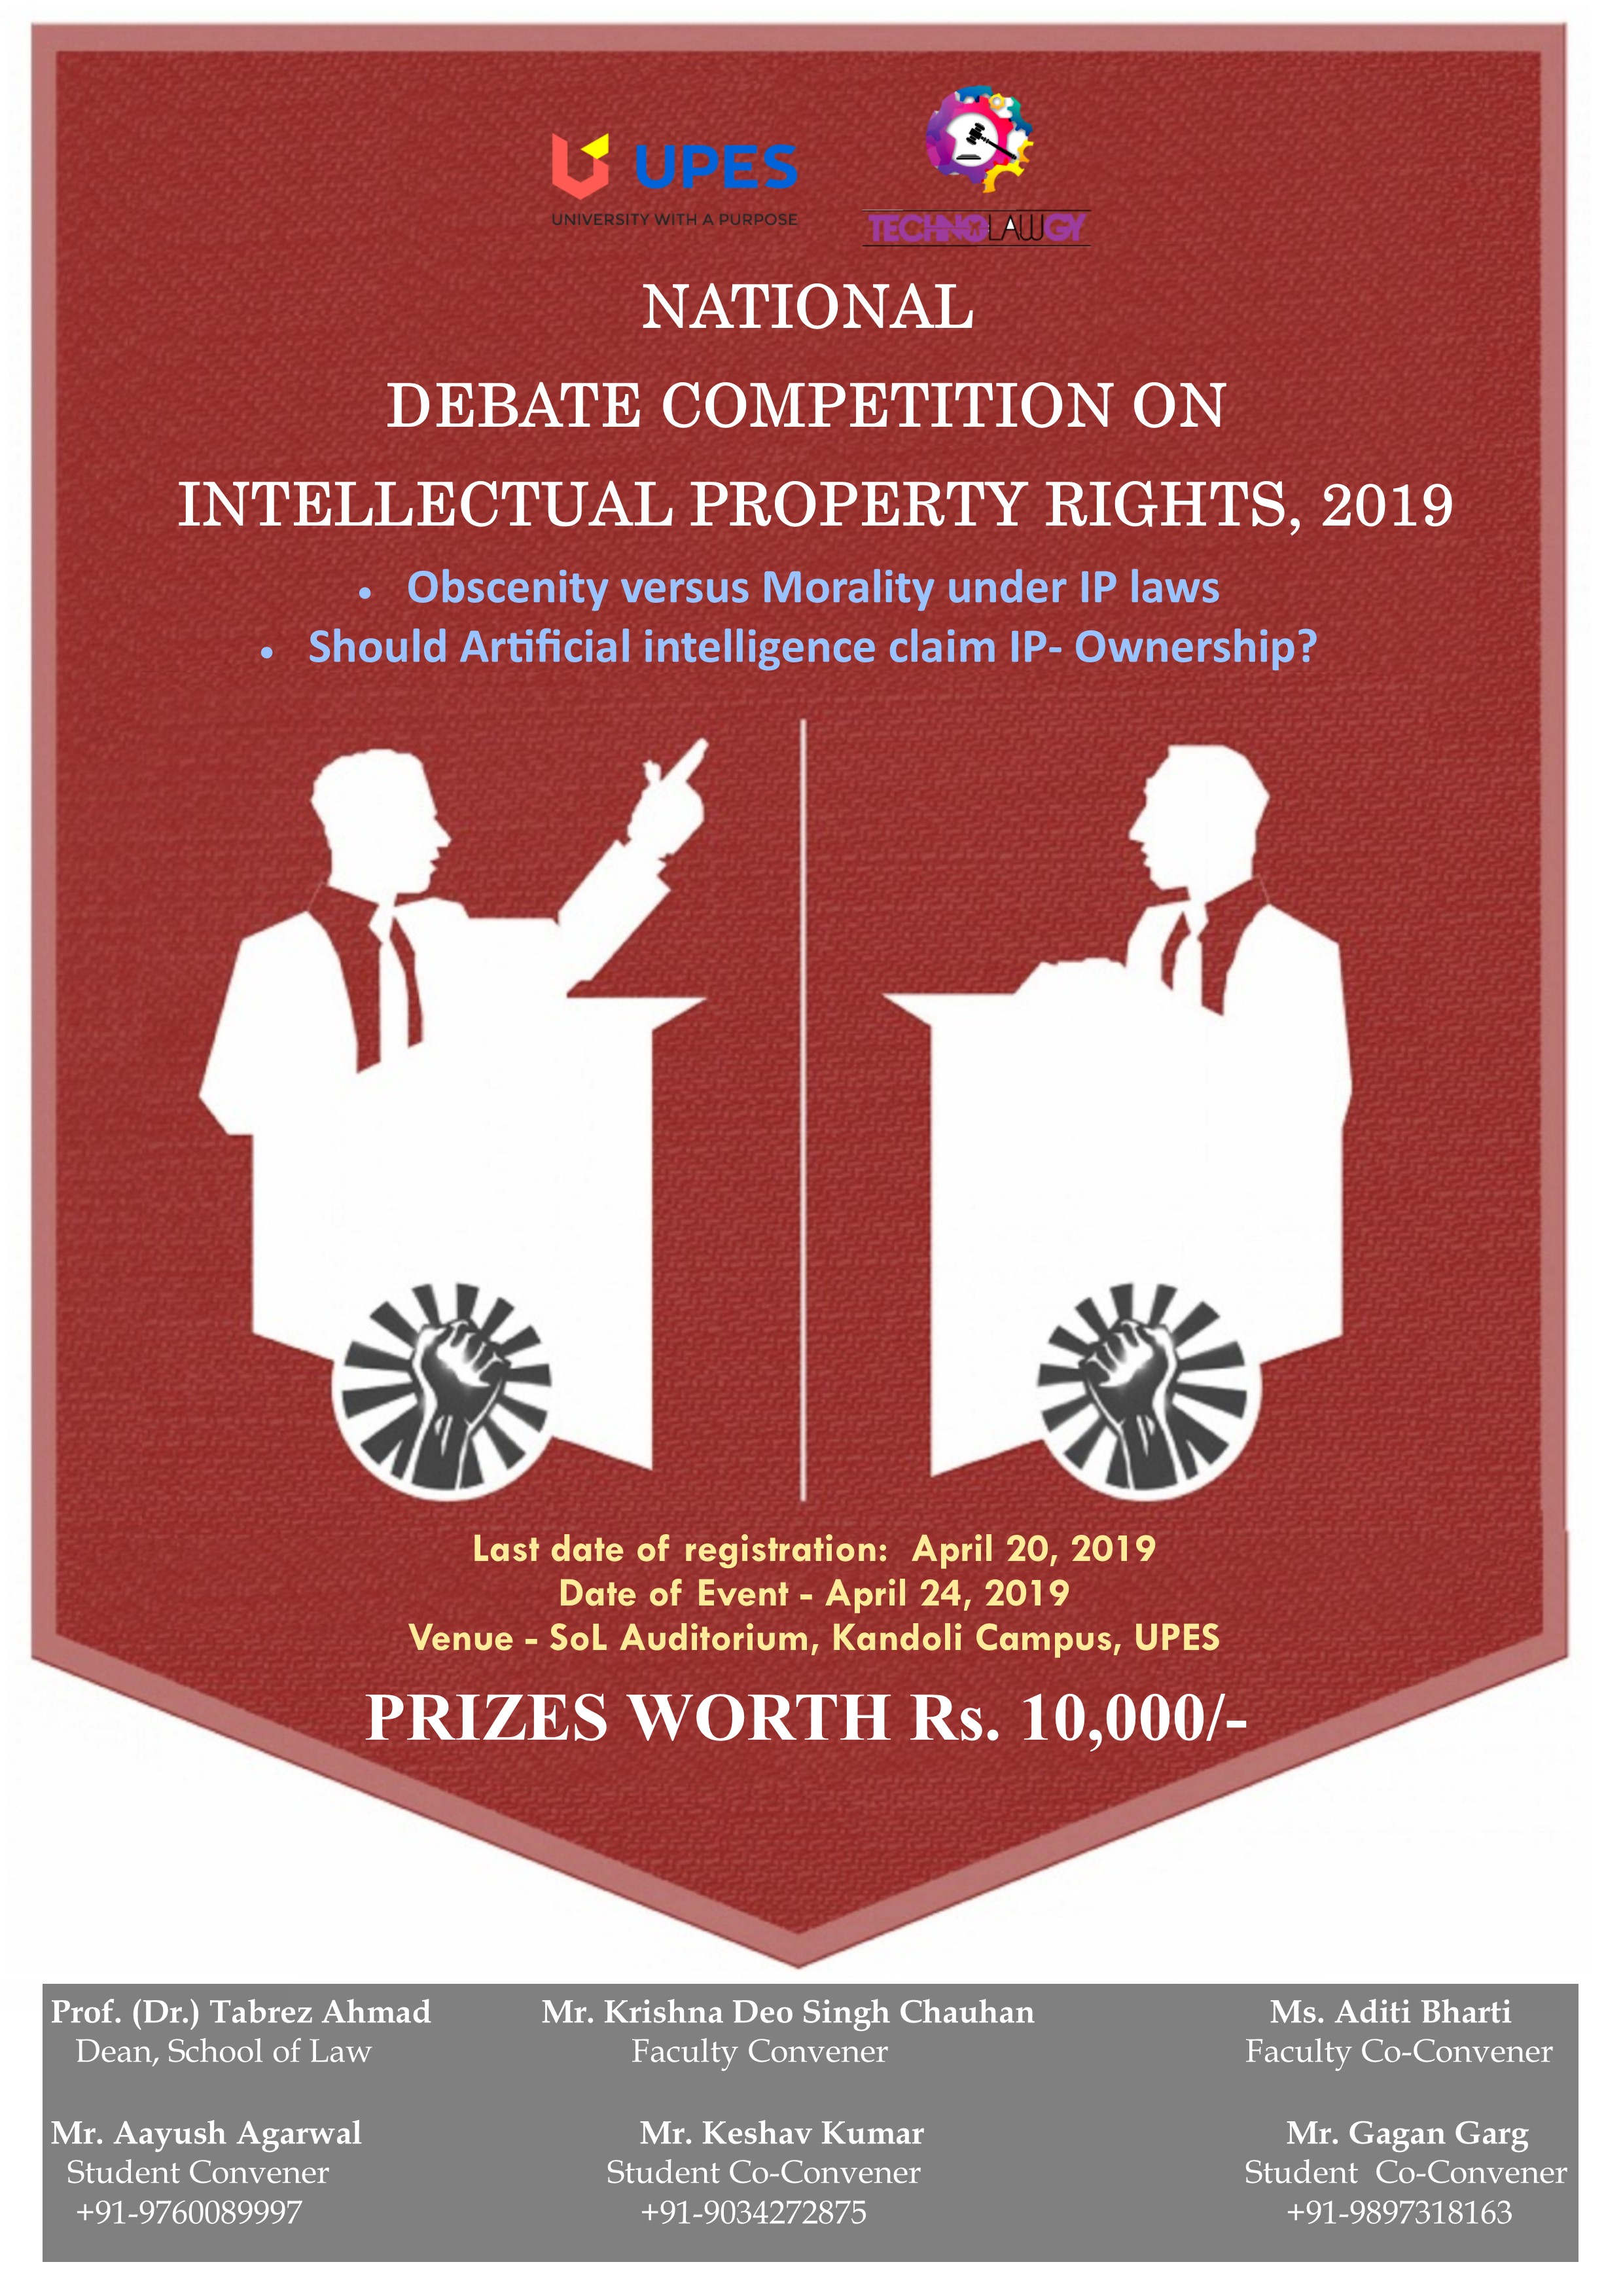 UPES IPR debate competition